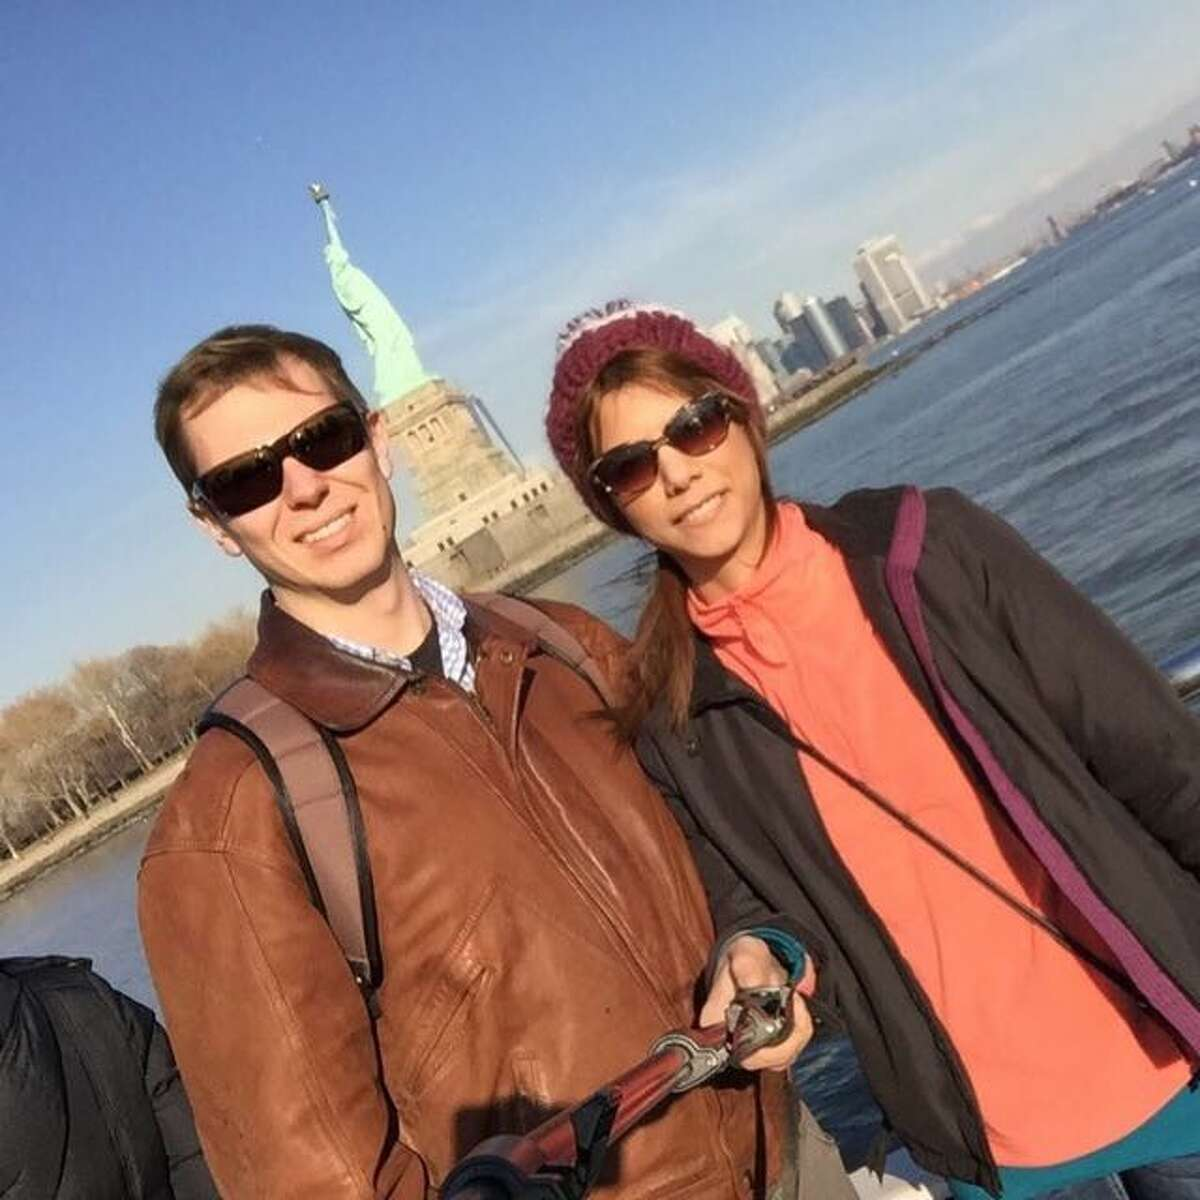 American Brian Swank and Iranian Mehraneh Rayatidamavandi, who met at SUNY Syracuse and got engaged in Poughkeepsie three years ago, can't get a fiance visa to be together in the U.S. because of the travel ban.